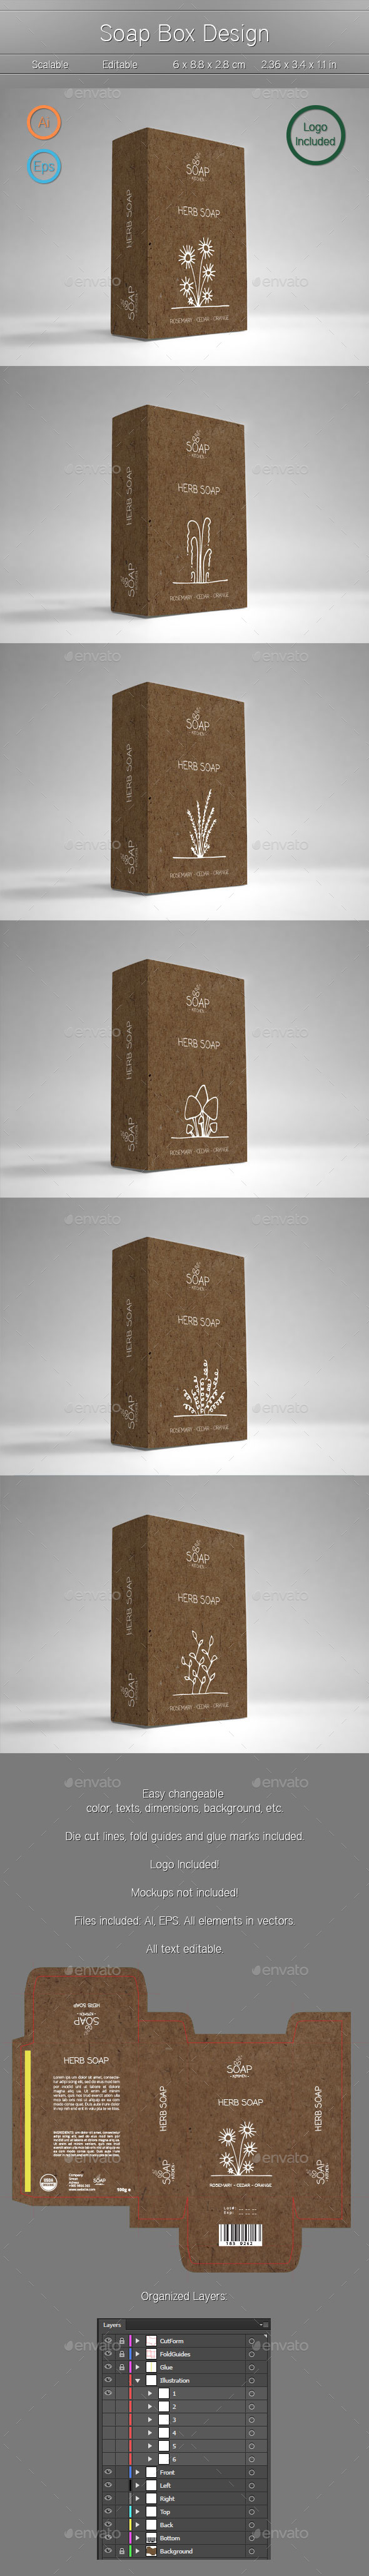 Box Package Design - Packaging Print Templates